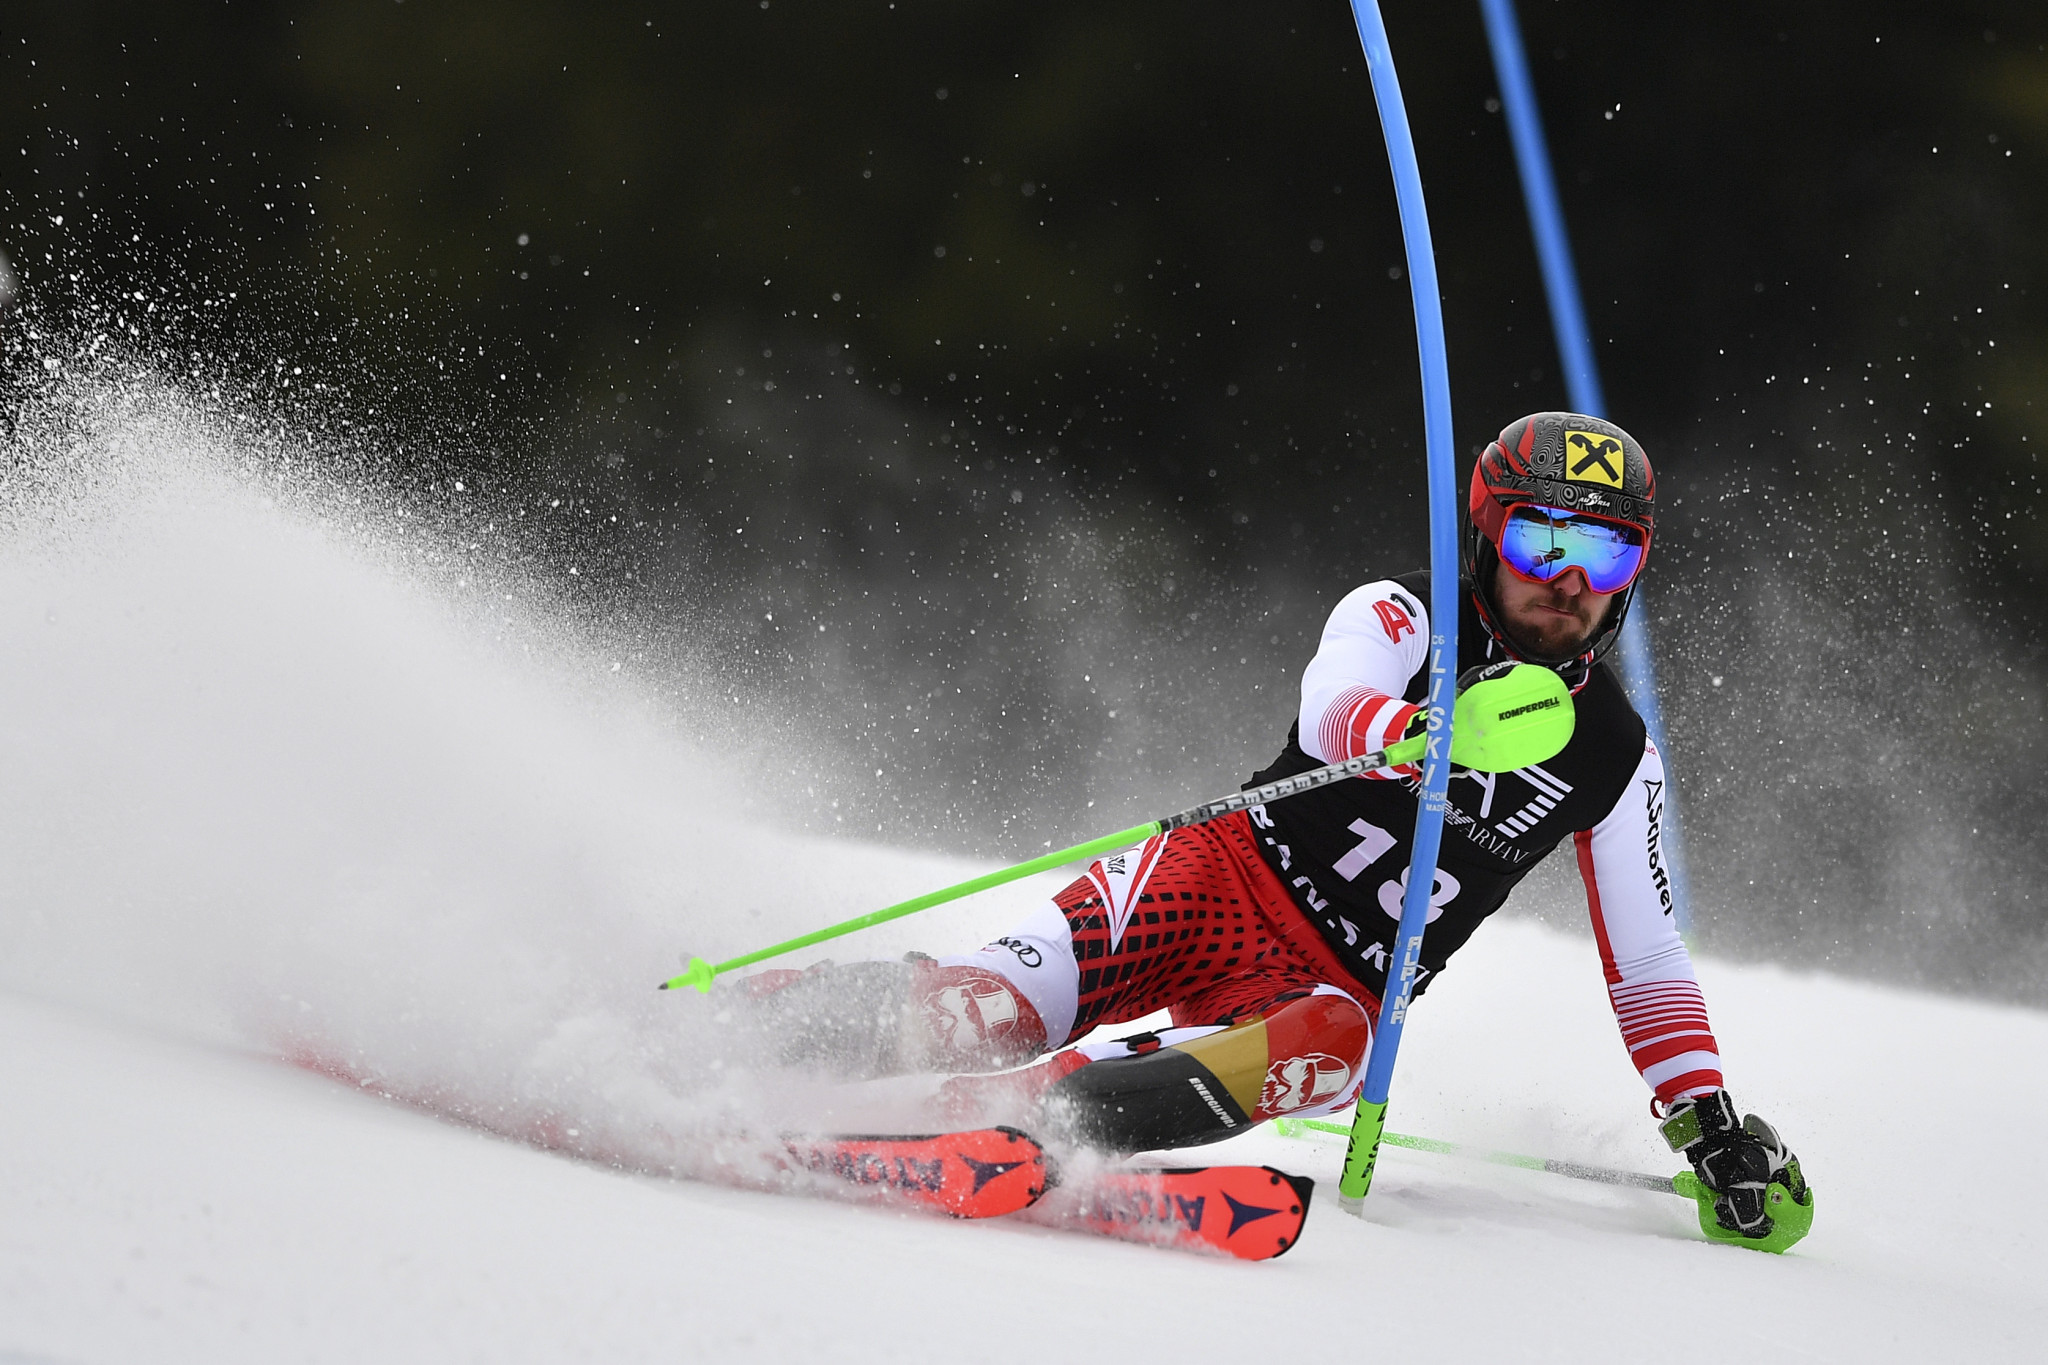 Austria's Marcel Hirscher finished in second place ©Getty Images